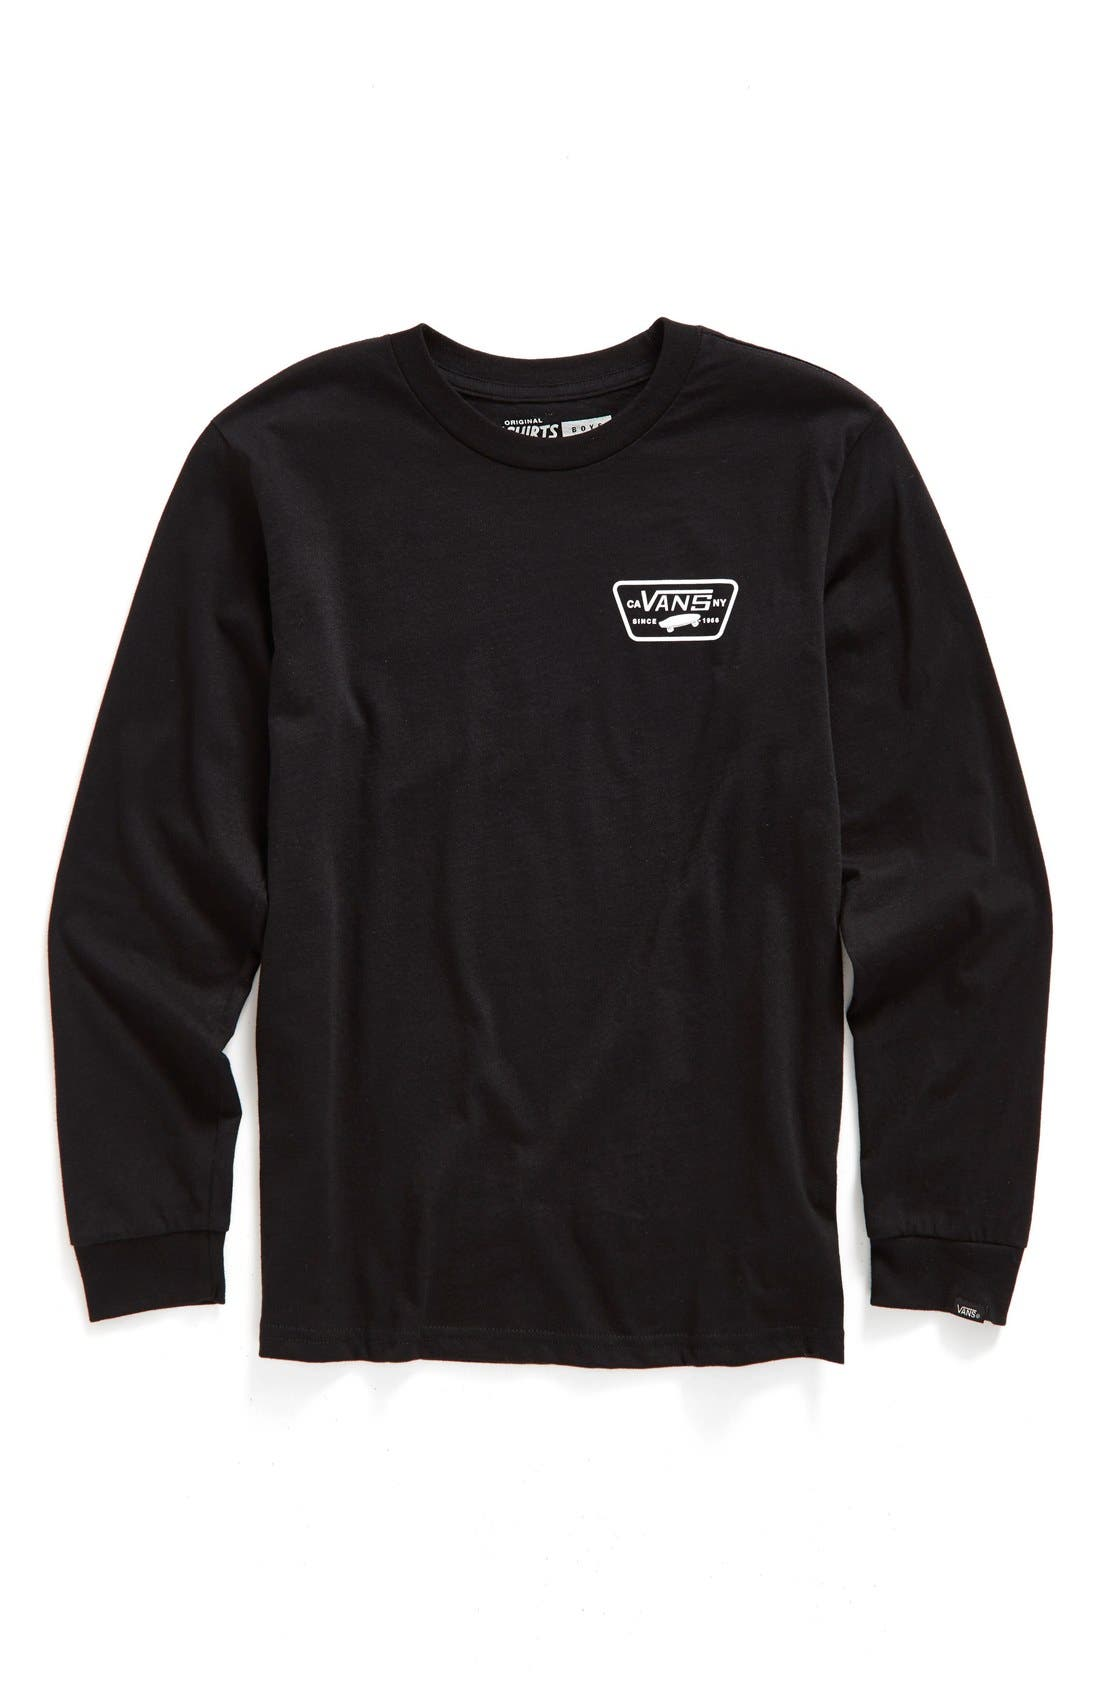 Alternate Image 1 Selected - Vans 'Full Patch' Long Sleeve T-Shirt (Big Boys)